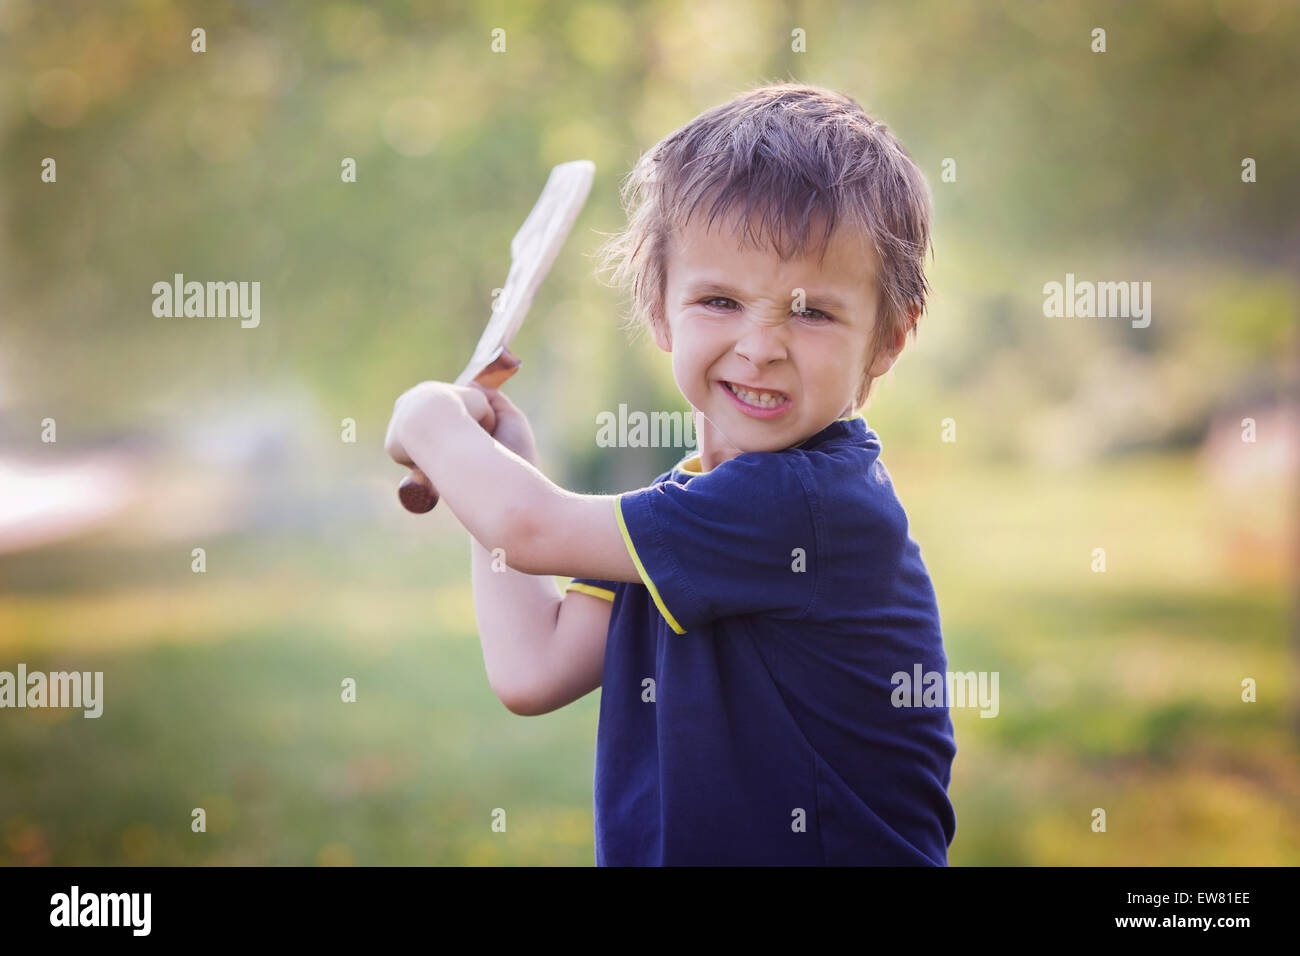 Angry little boy, holding sword, glaring with a mad face at the camera, outdoors in the park - Stock Image